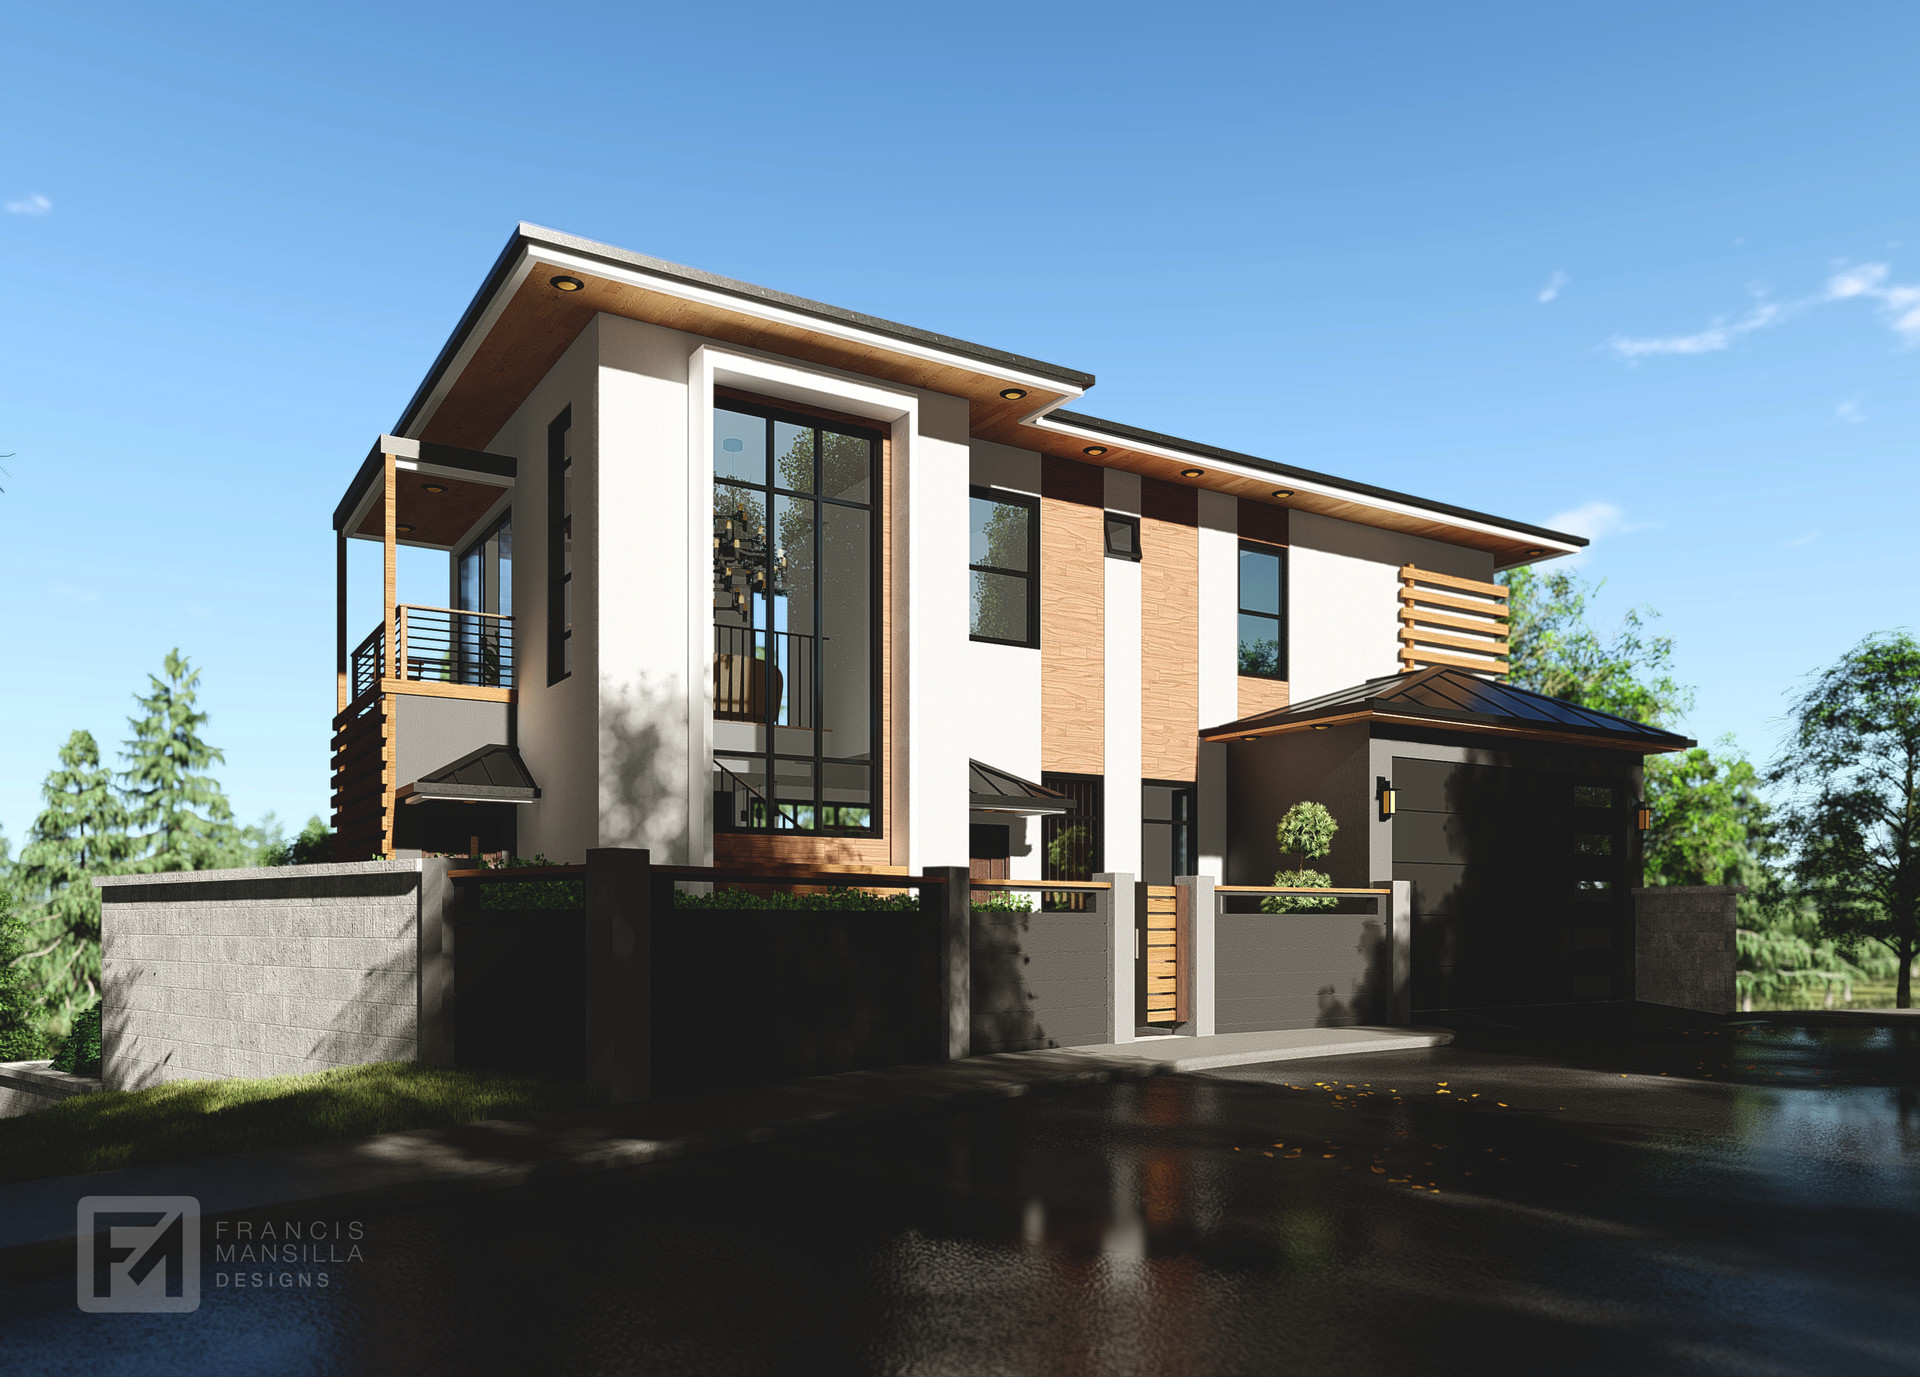 Artstation Proposed Two Storey Residence With Basement Francis Mansilla